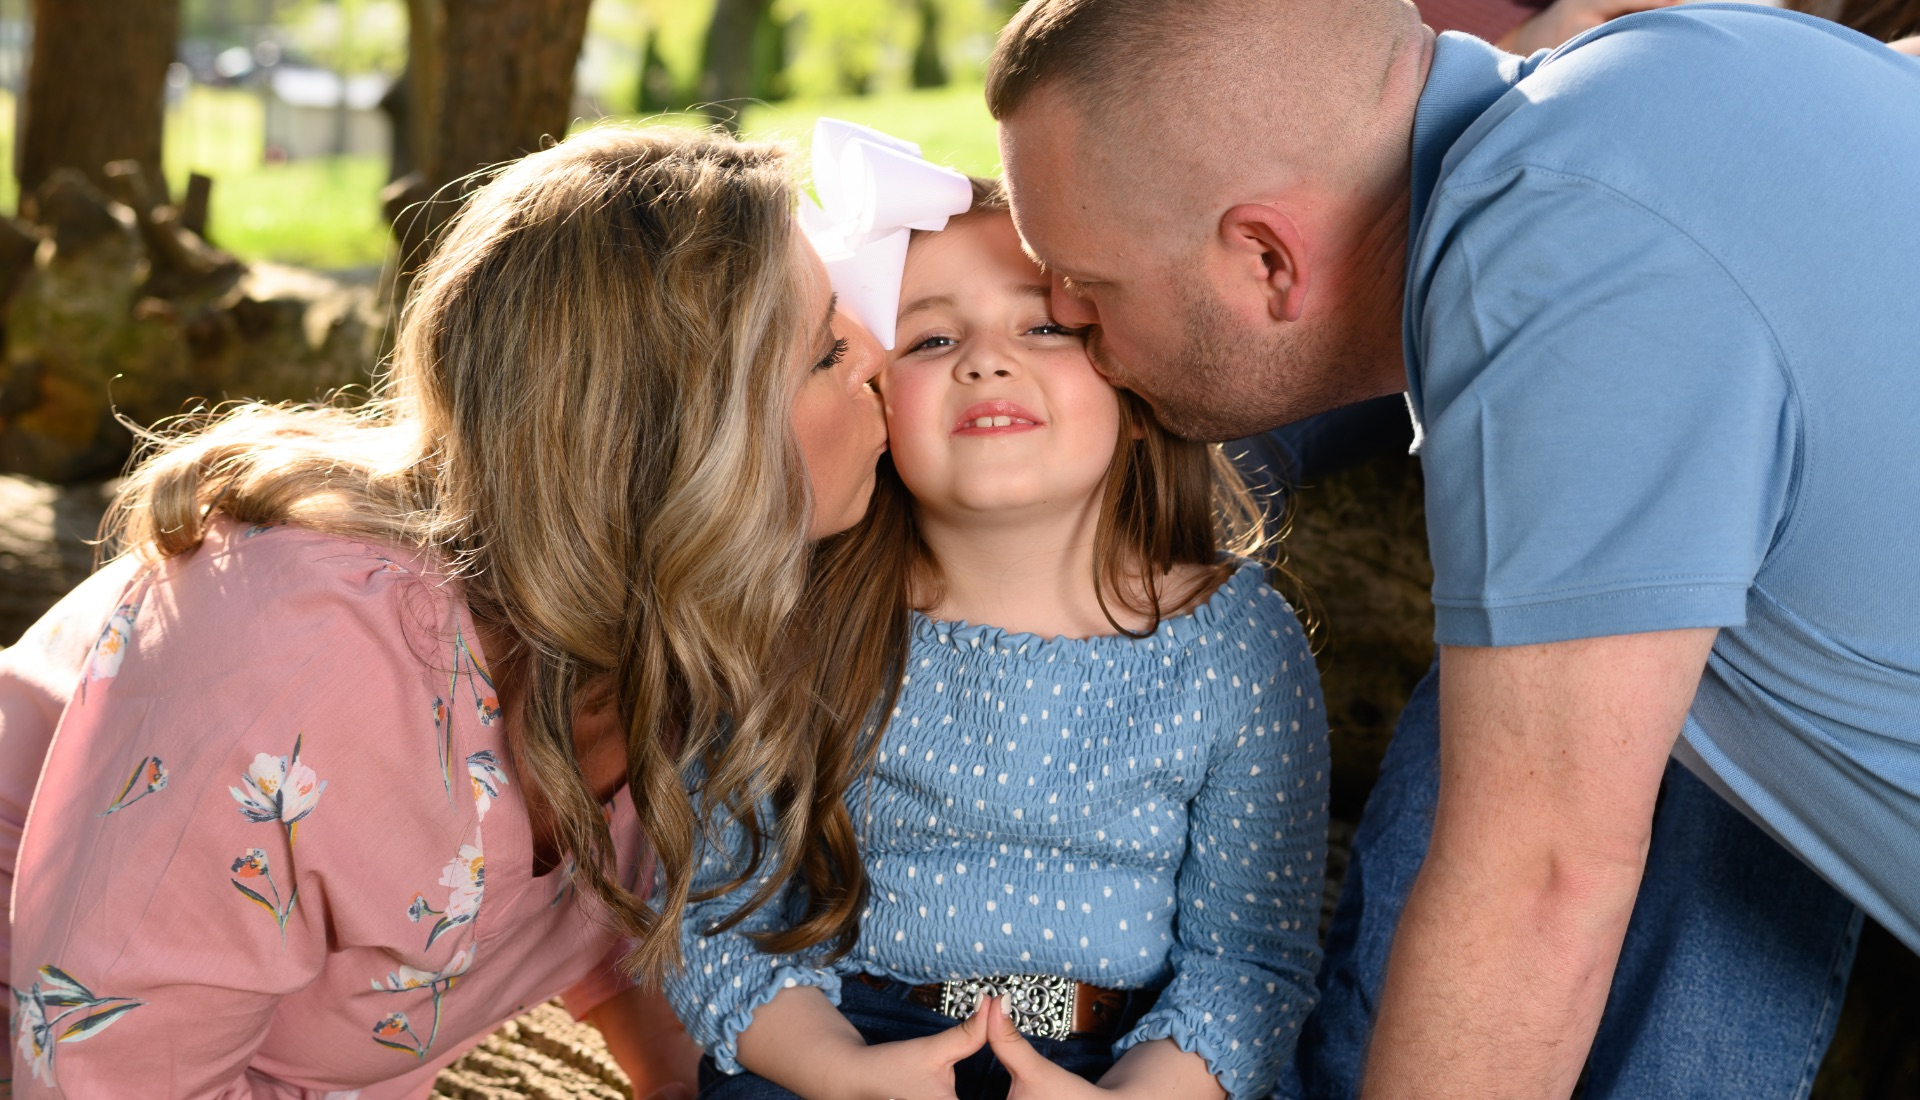 Henley smiles as she sits in between her mom, Lindsay, a middle-aged white woman with blonde hair, wearing a pink top, and her father, Jarred, a middle-aged white man with short brown hair, wearing a blue shirt. They kiss either side of her cheeks.